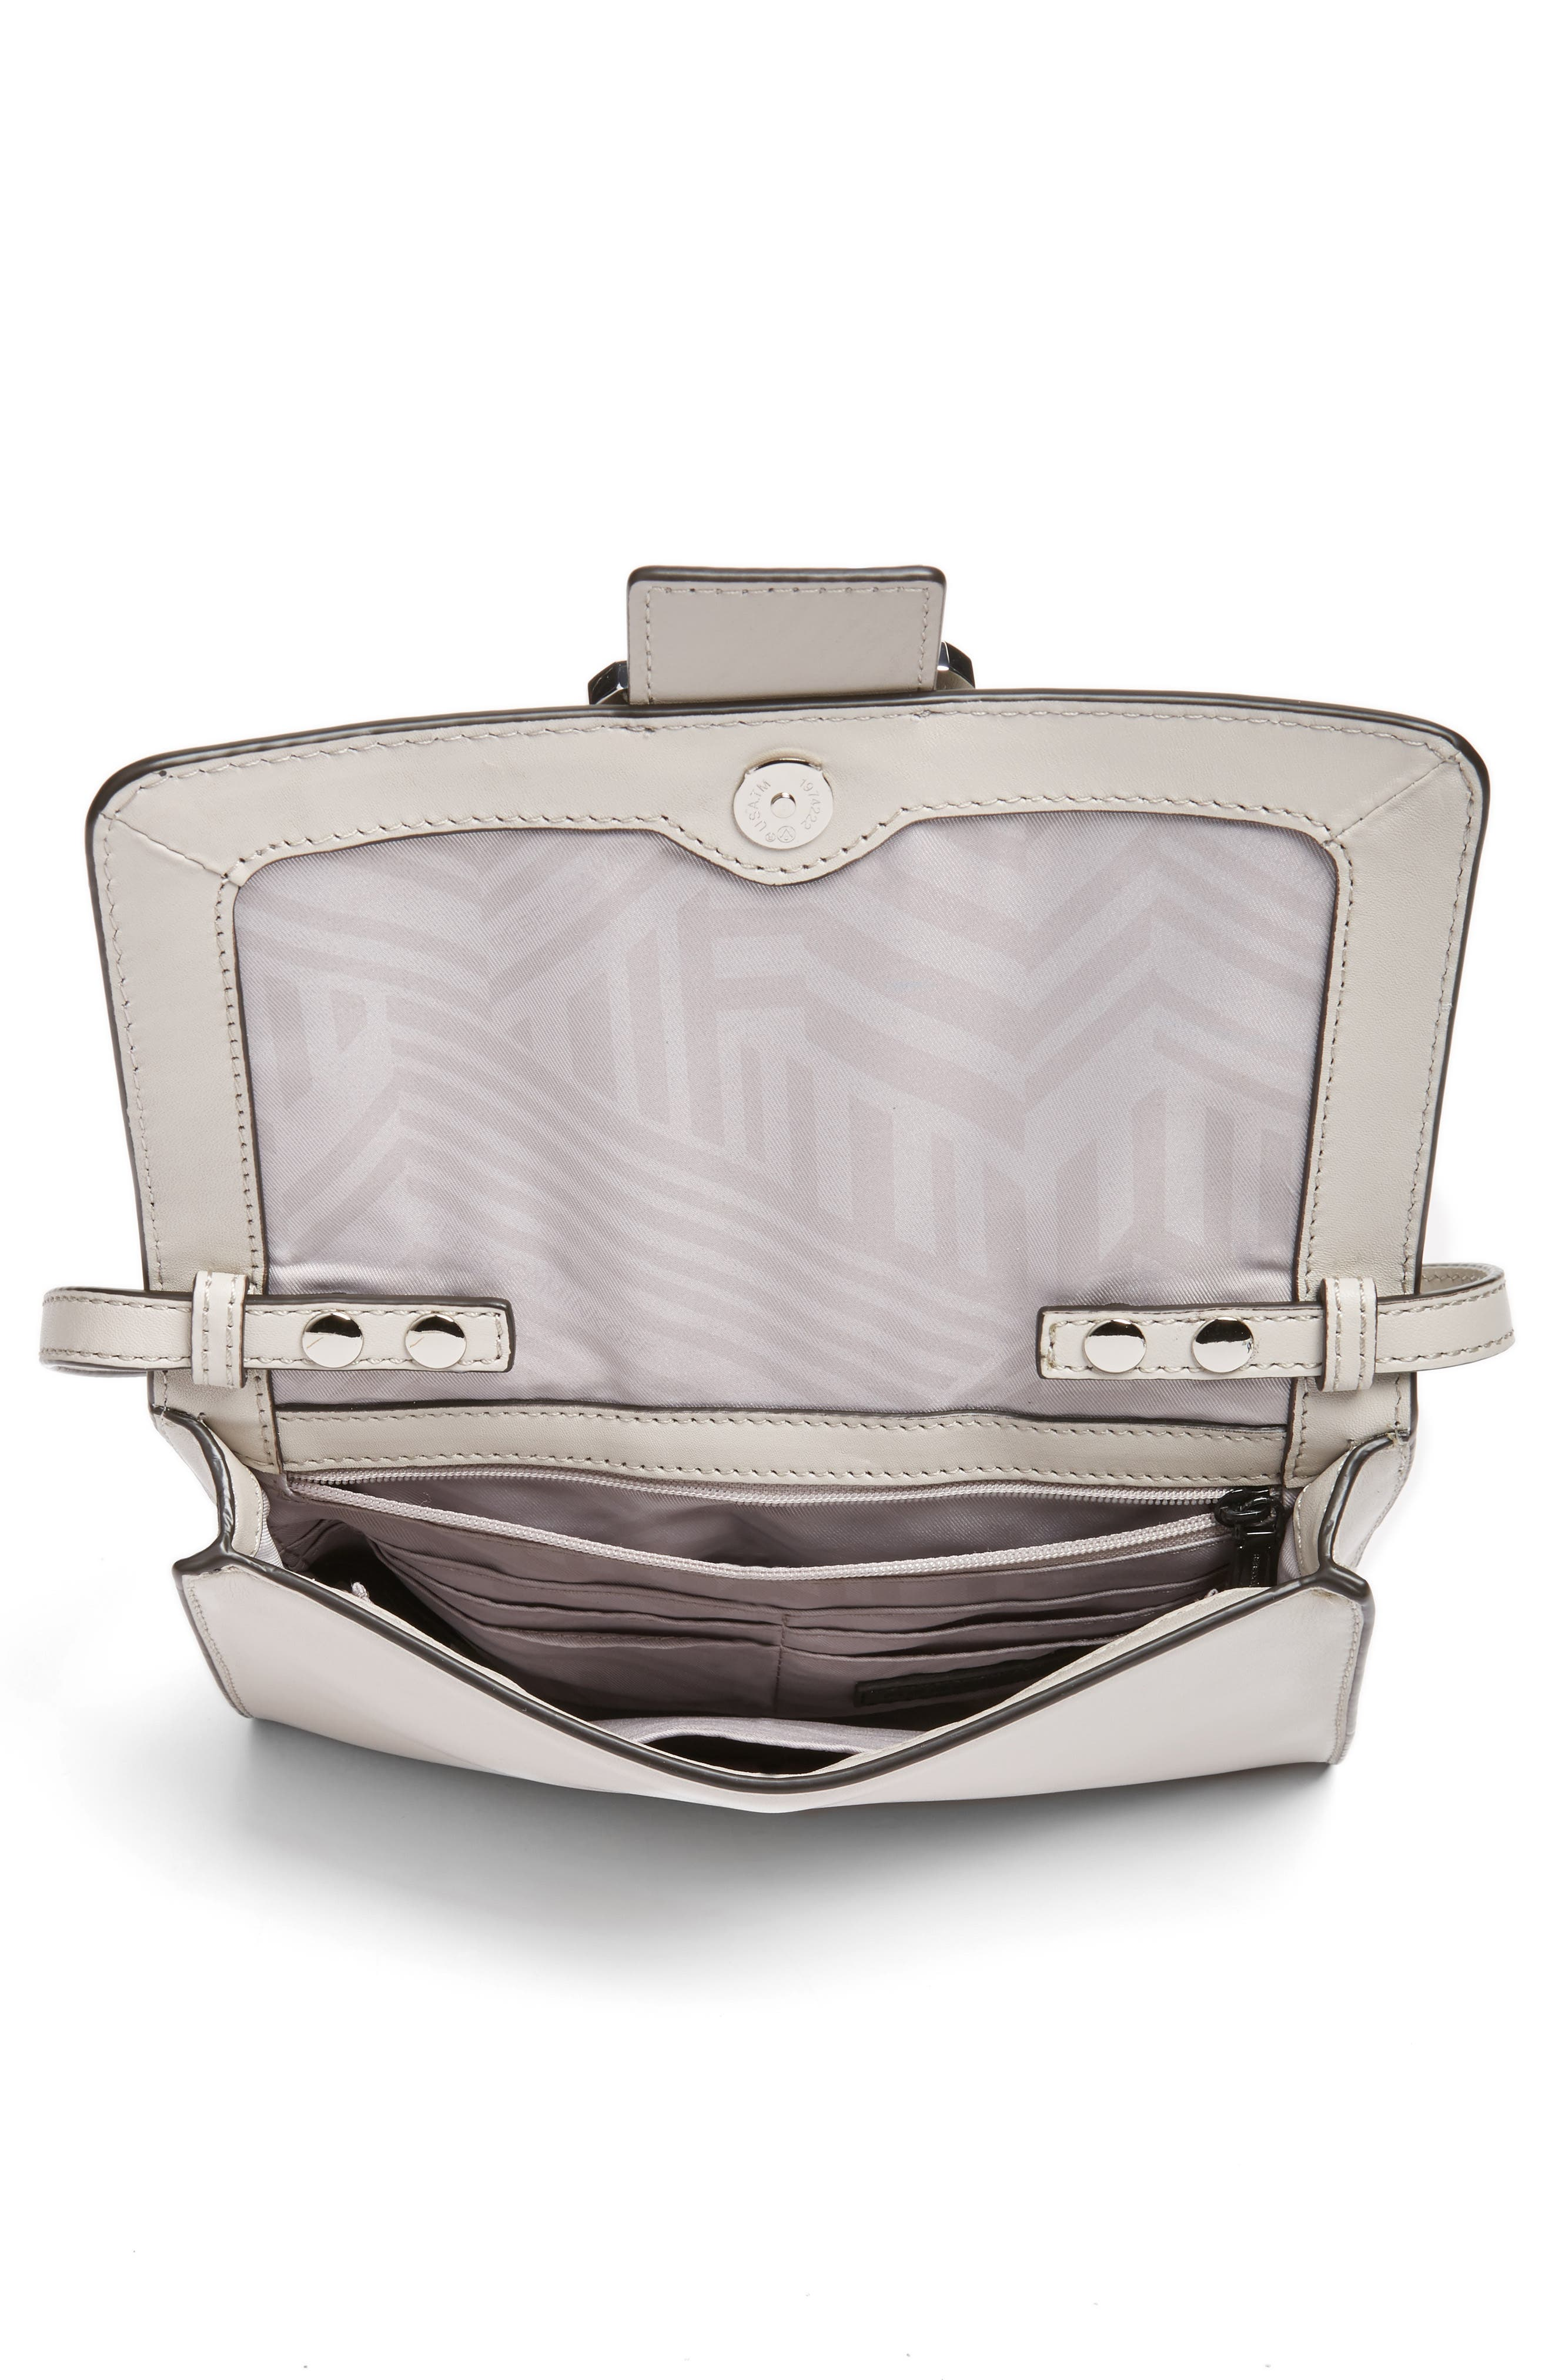 Hook Up Convertible Leather Clutch,                             Alternate thumbnail 4, color,                             Putty/ Silver